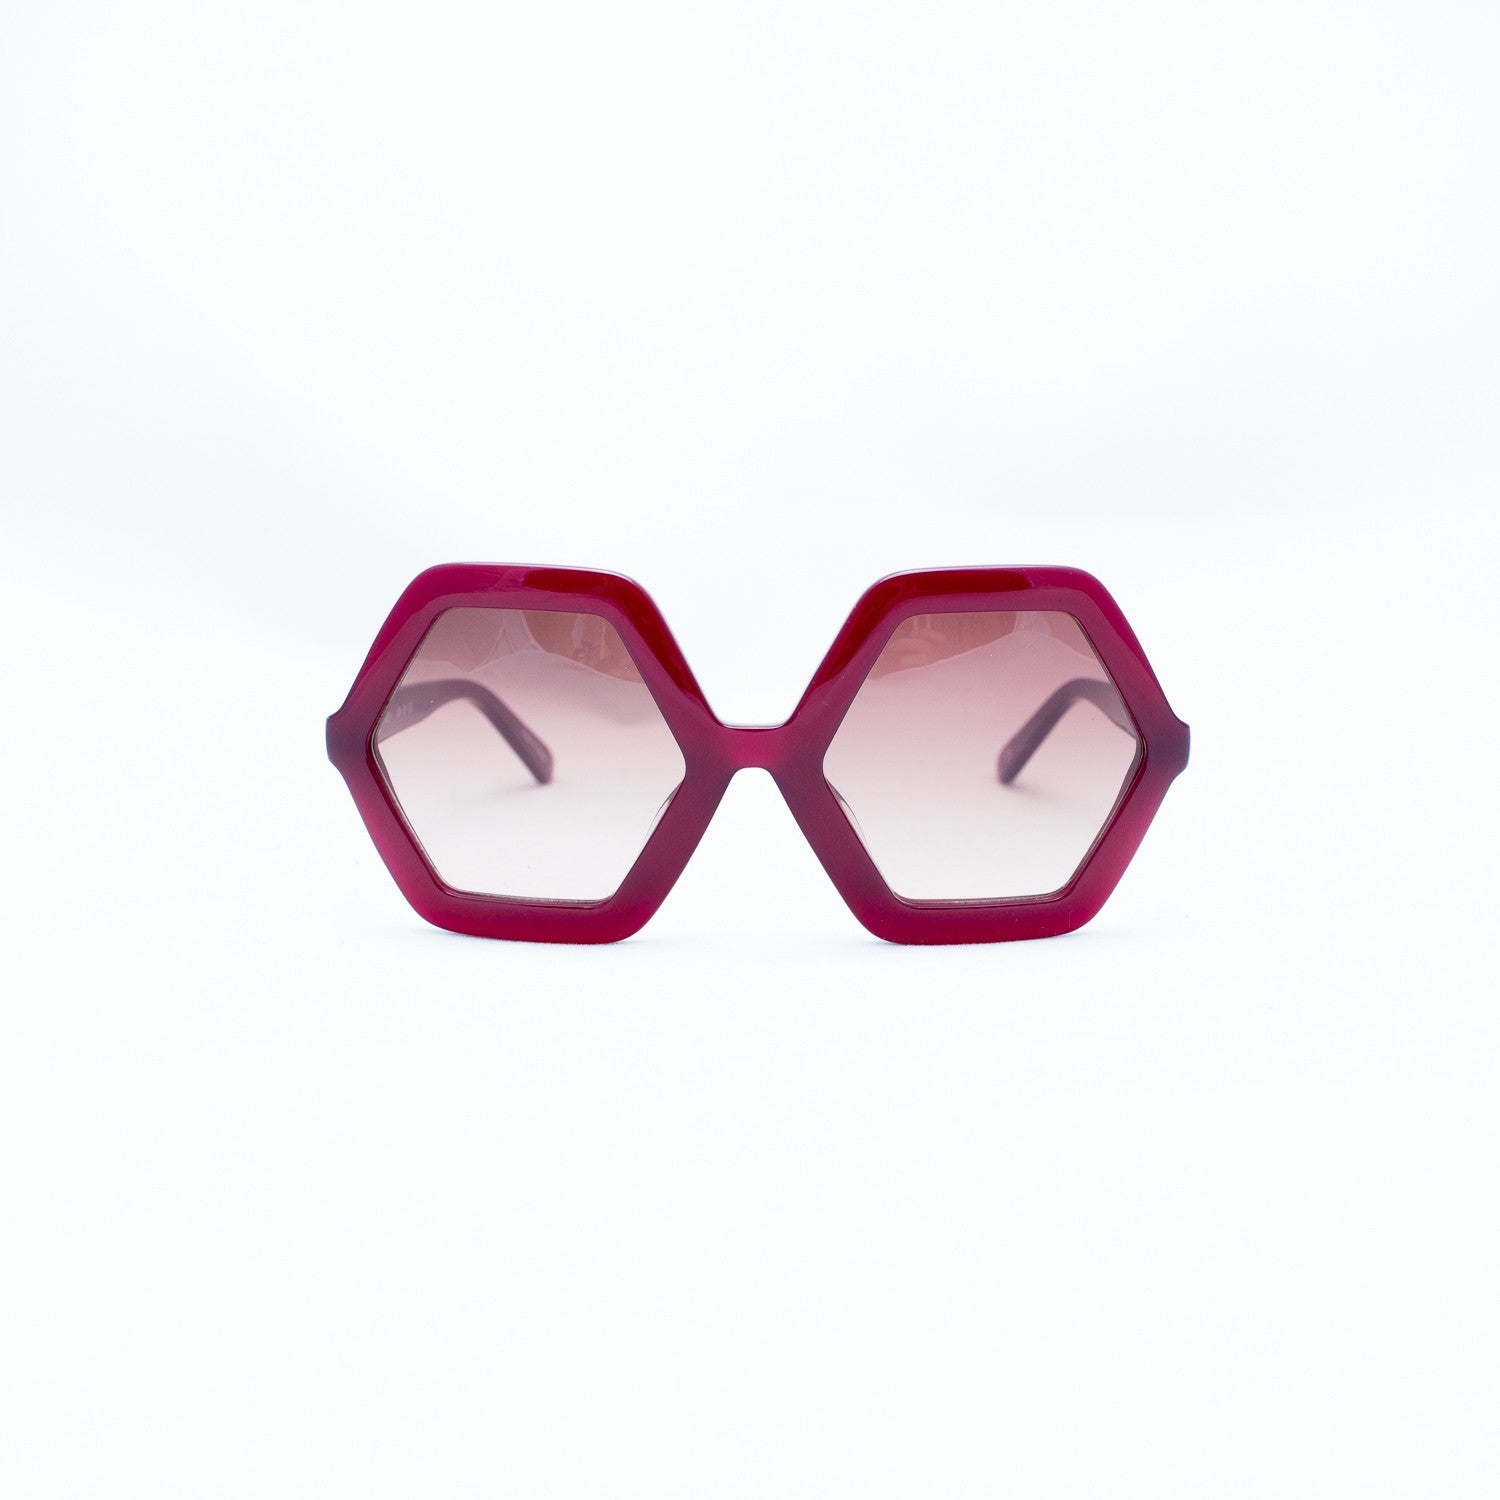 Honey sunglasses - burgundy - KID - 3